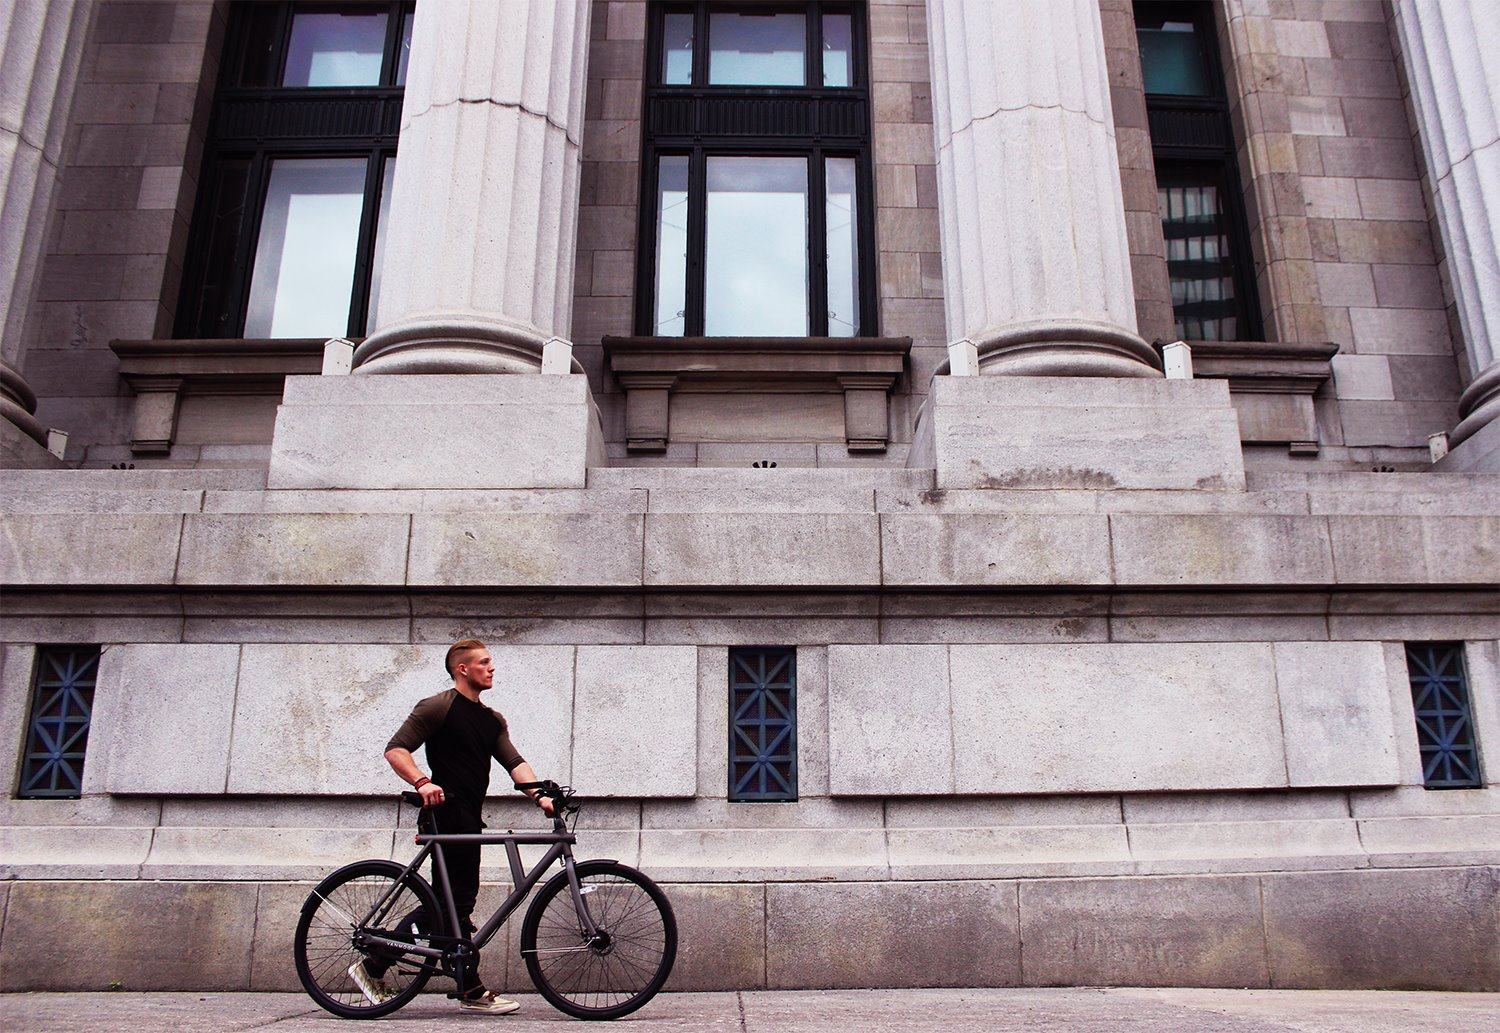 Vanmoof S5 in Old Montreal